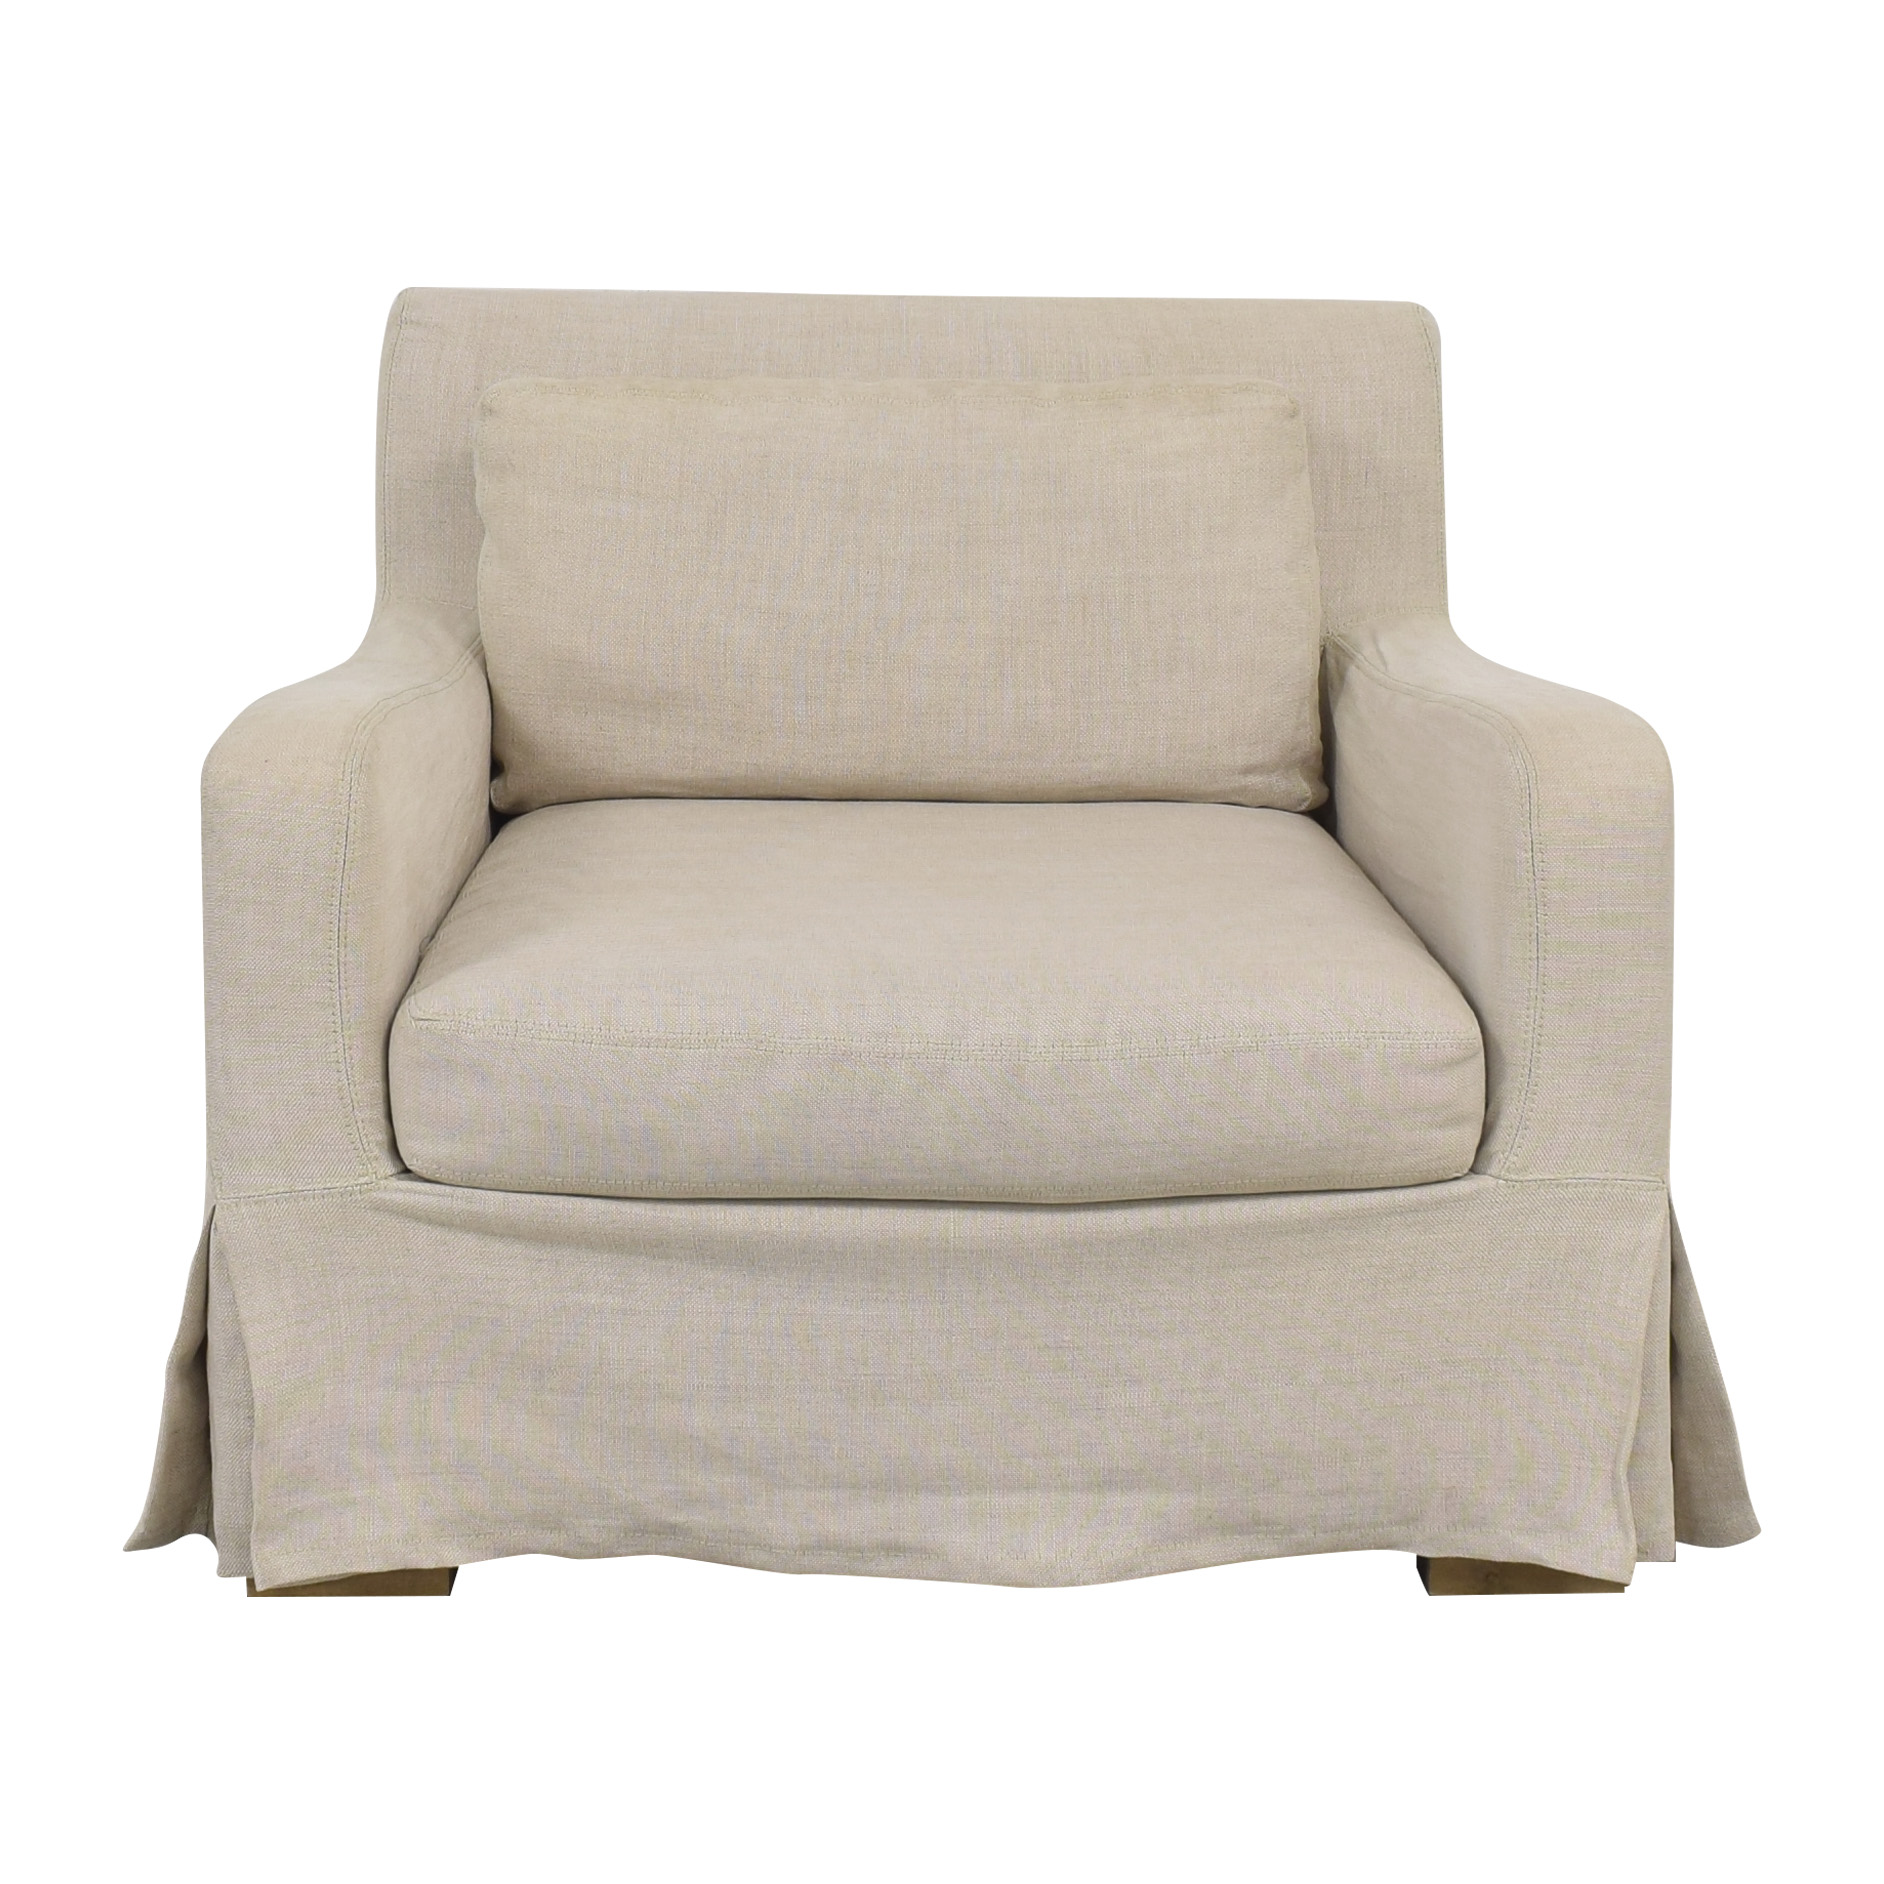 Restoration Hardware Belgian Slope Arm Slipcovered Chair / Accent Chairs